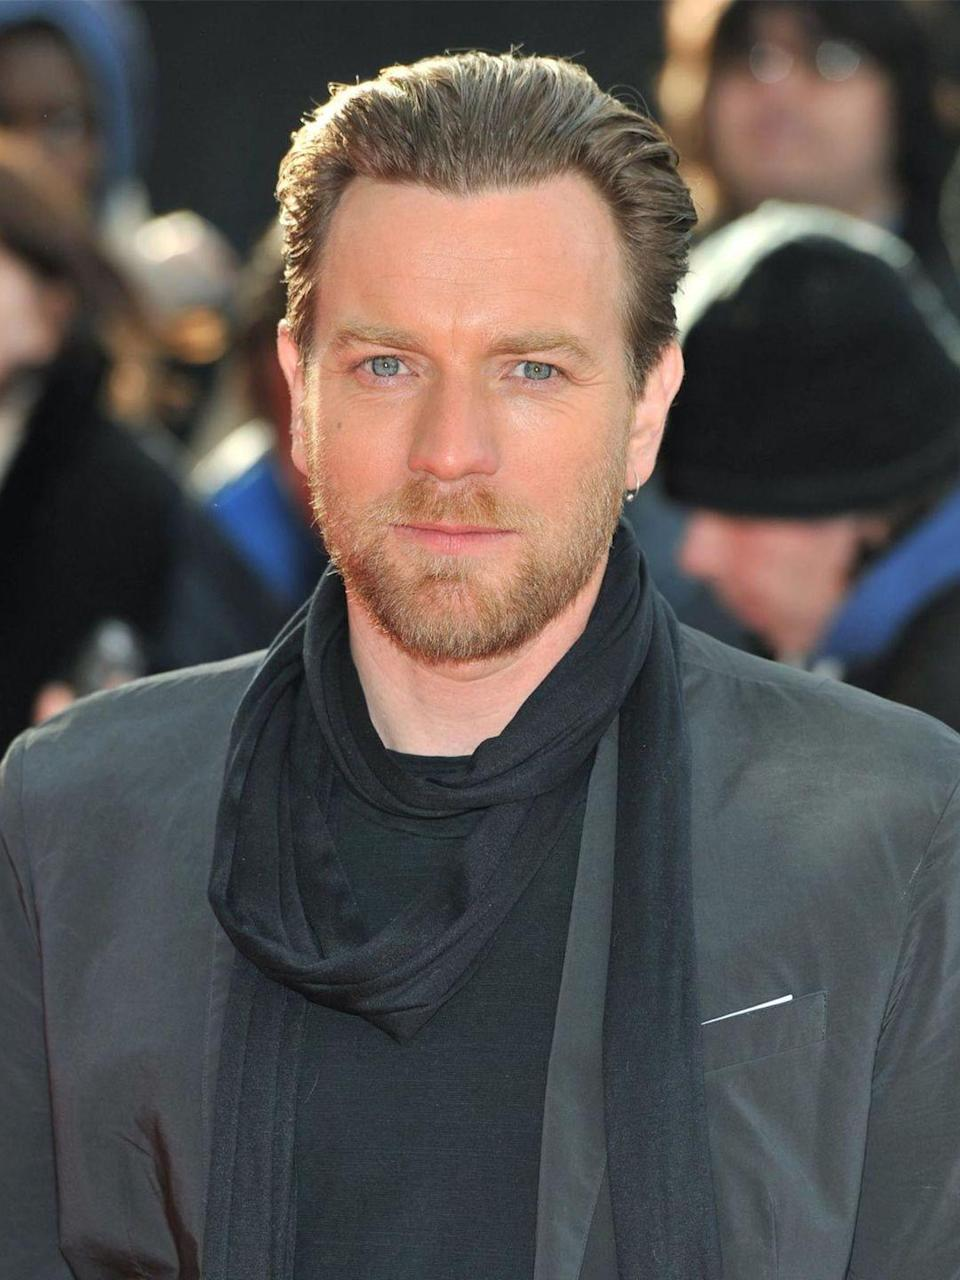 <p>Ewan McGregor has been sober since 2001, saying that he was 'a maniac on the booze', though only remembers his wilder years with fondness.</p>